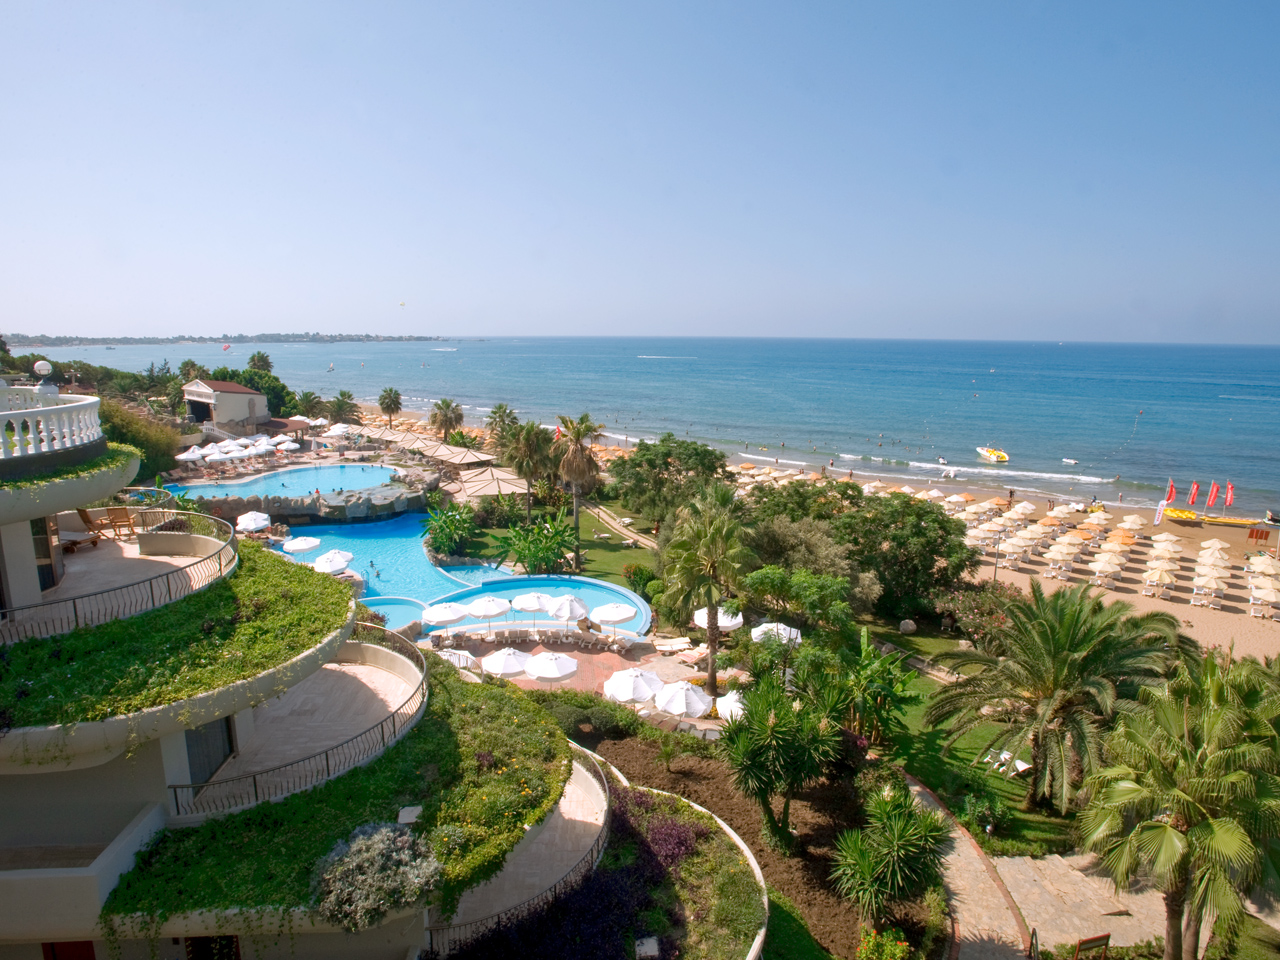 Отель Crystal Sunrise Queen Luxury Resort & Spa 5*  Кристал Санрайз Квин Лакшери Резорт Энд Спа